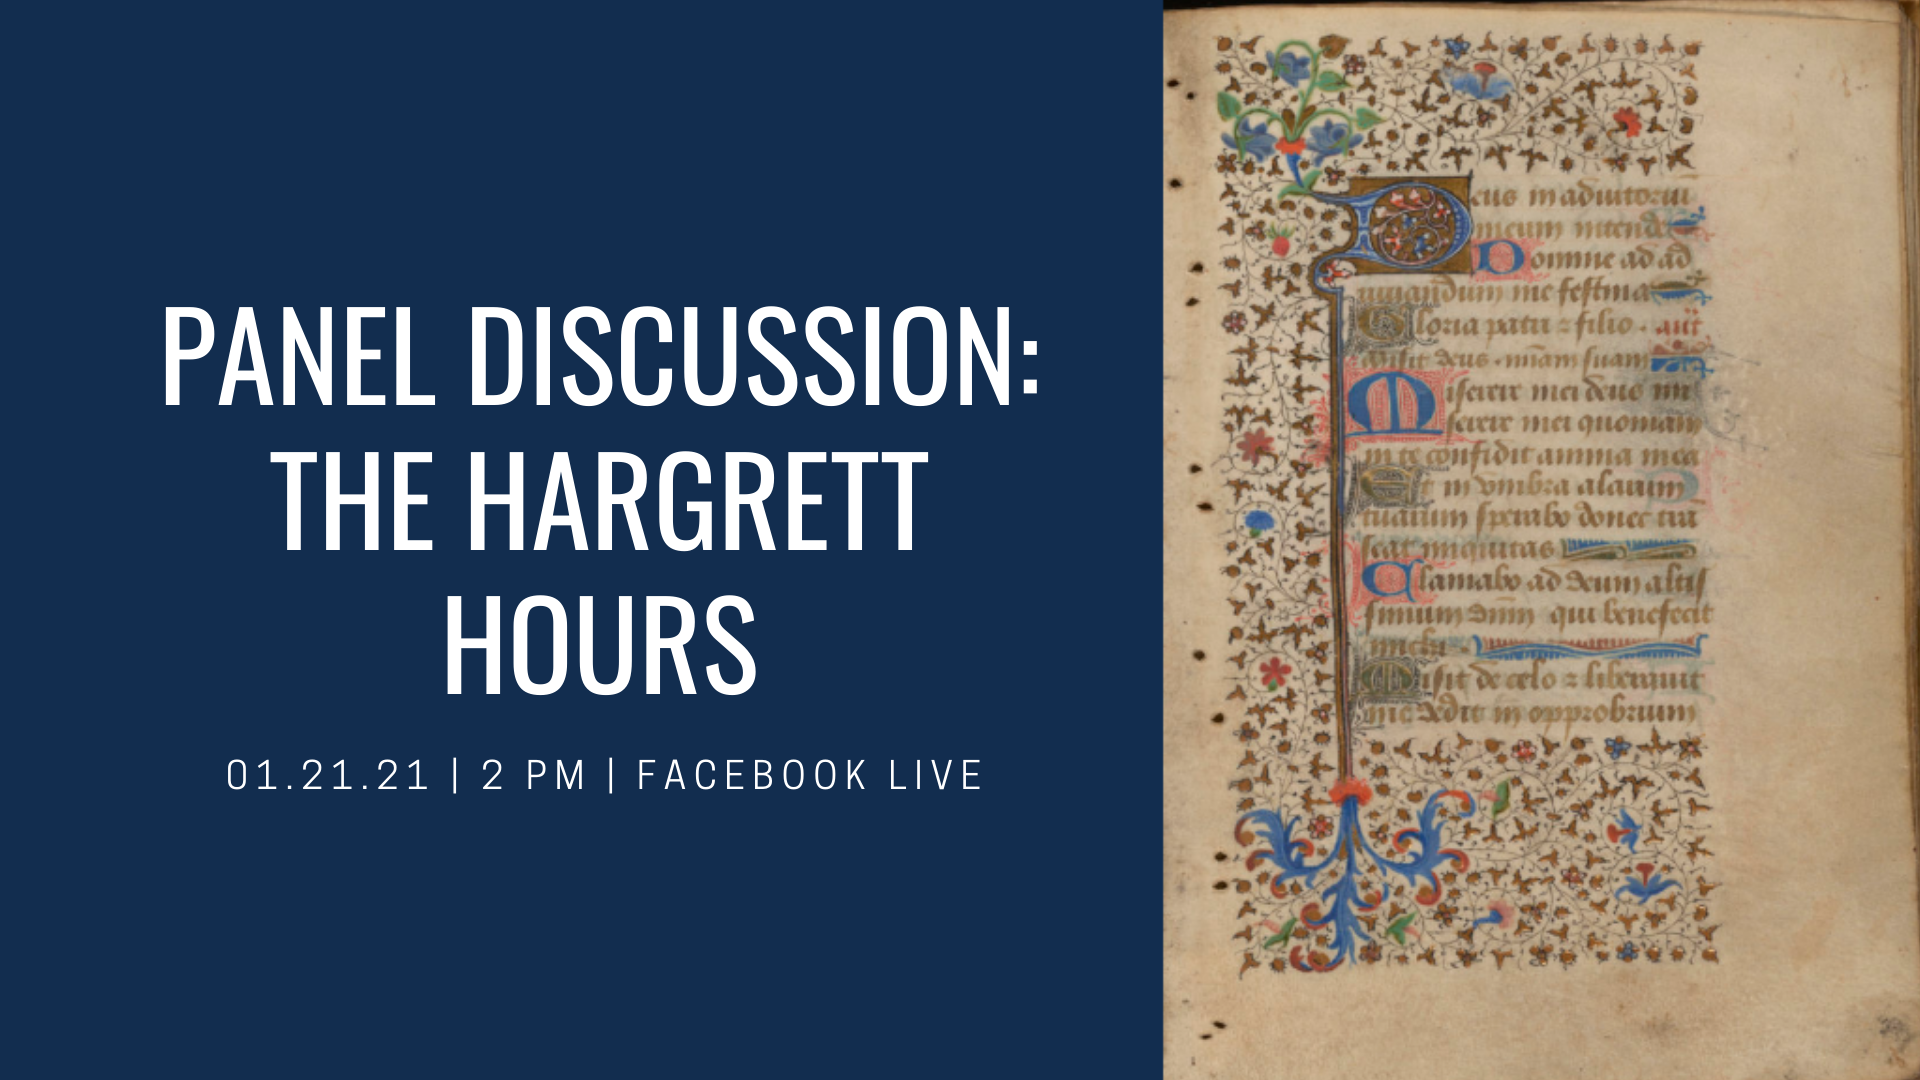 Panel Discussion: The Hargrett Hours